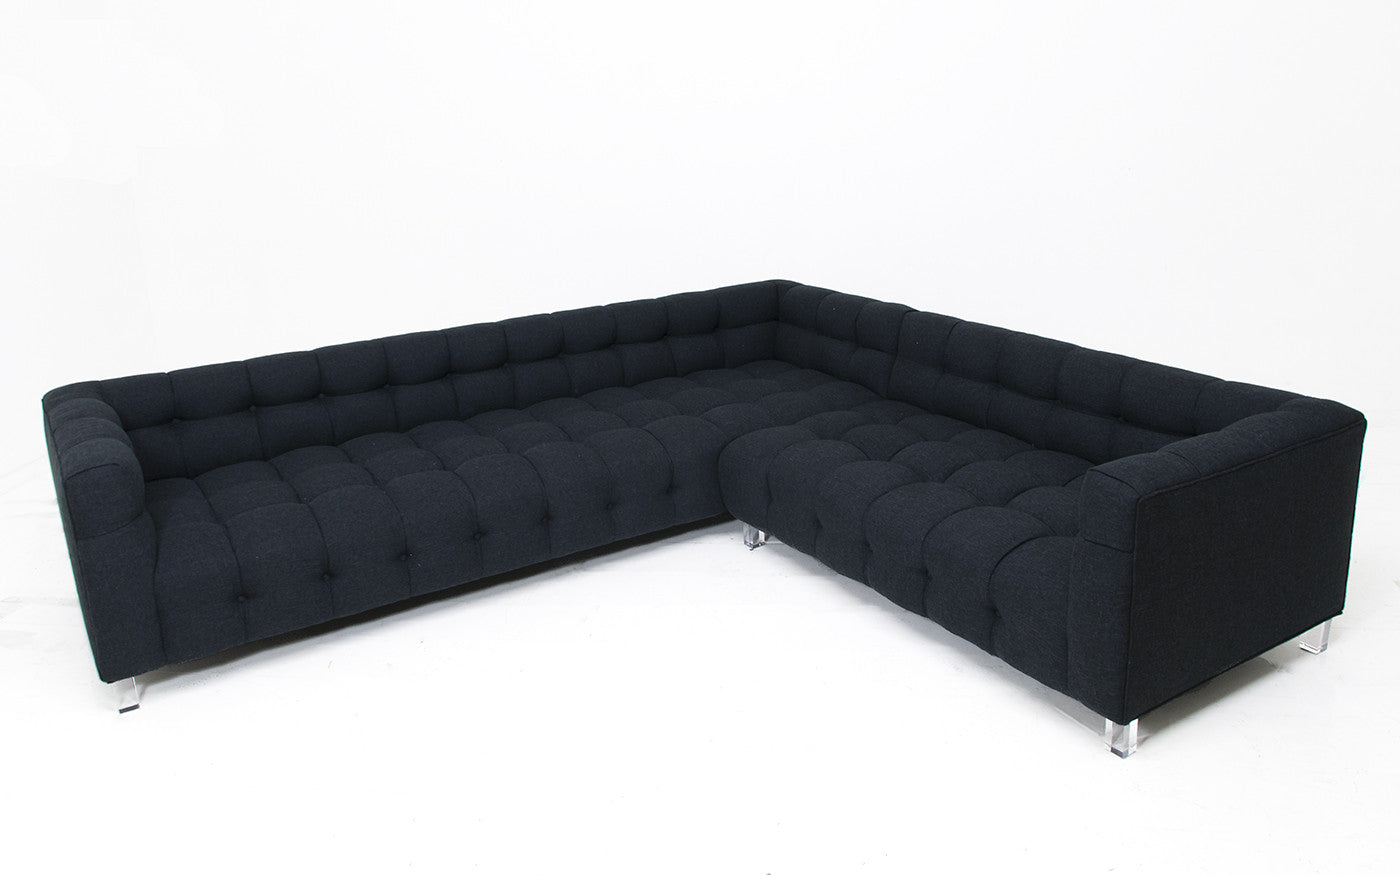 Tufted Modern Black Sectional Modshop Modshop ~ Modern Black Sectional Sofa